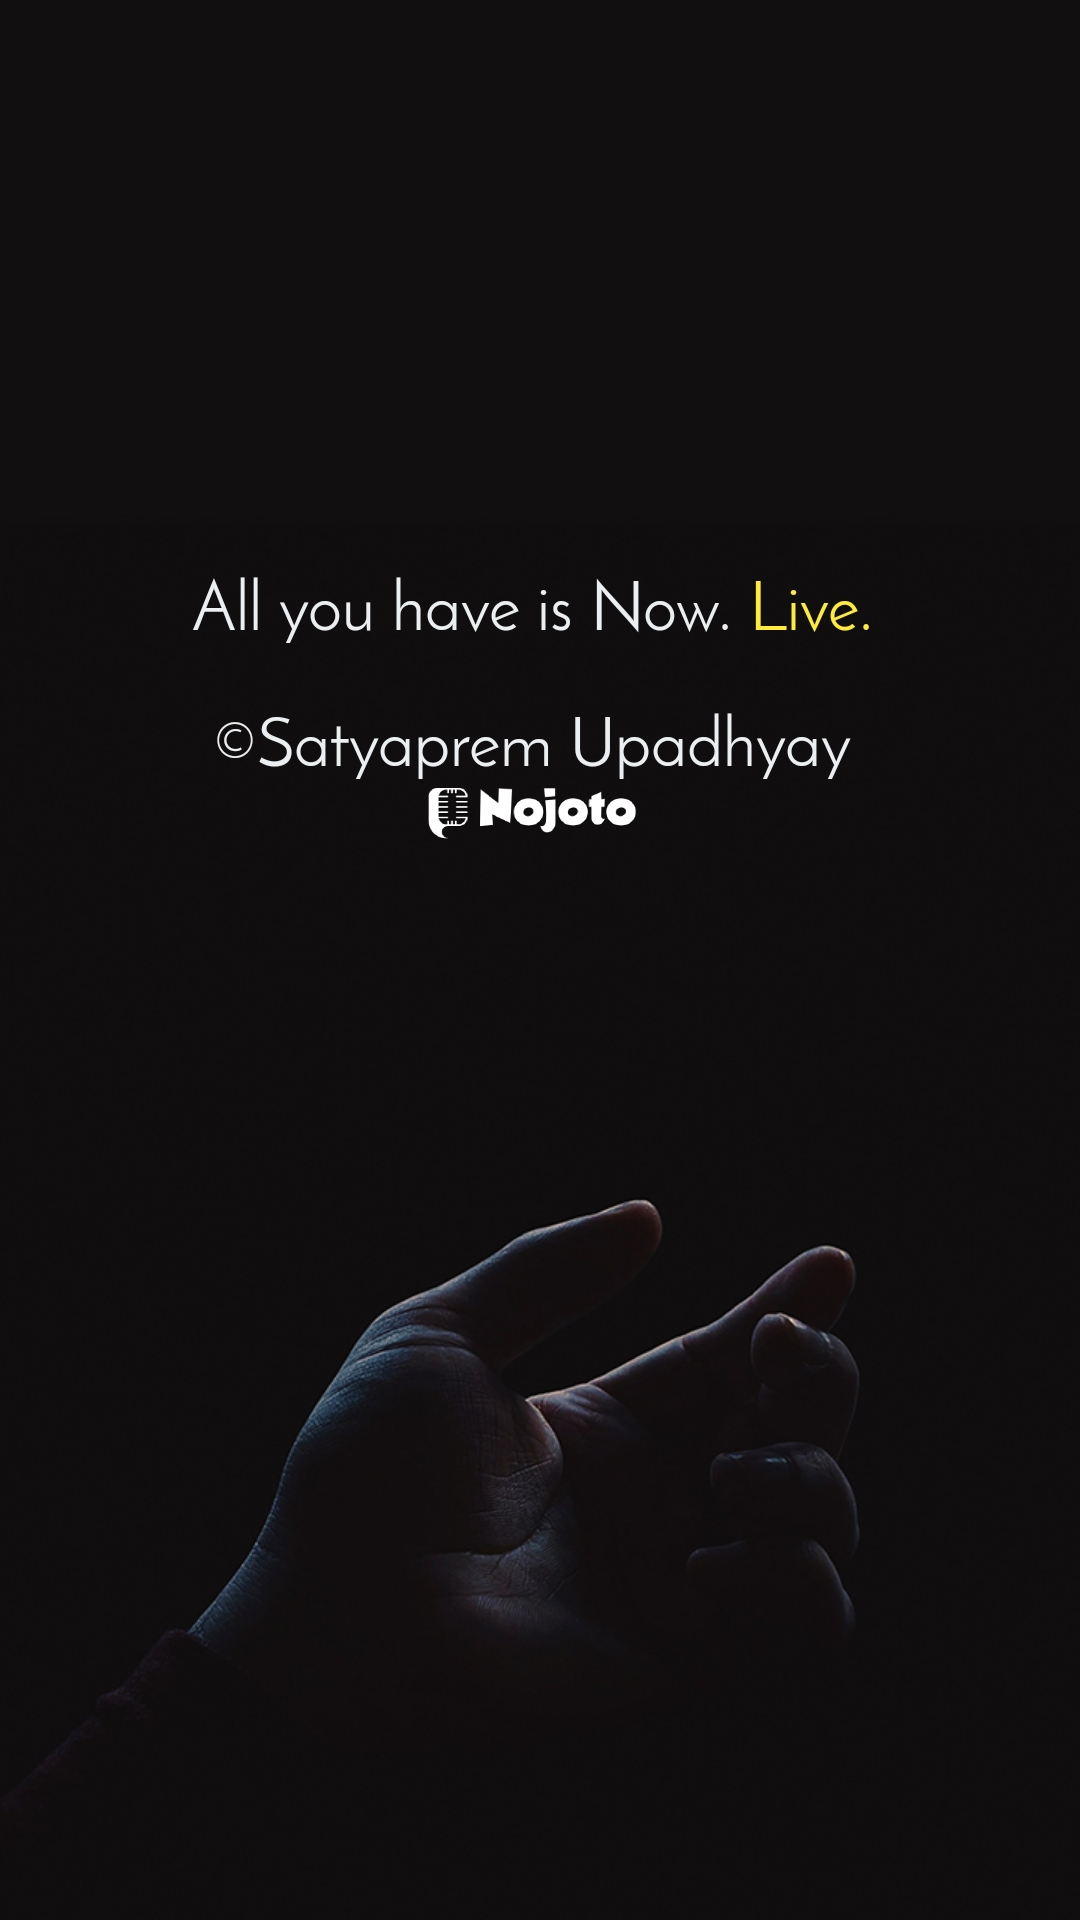 All you have is Now. Live.  ©Satyaprem Upadhyay